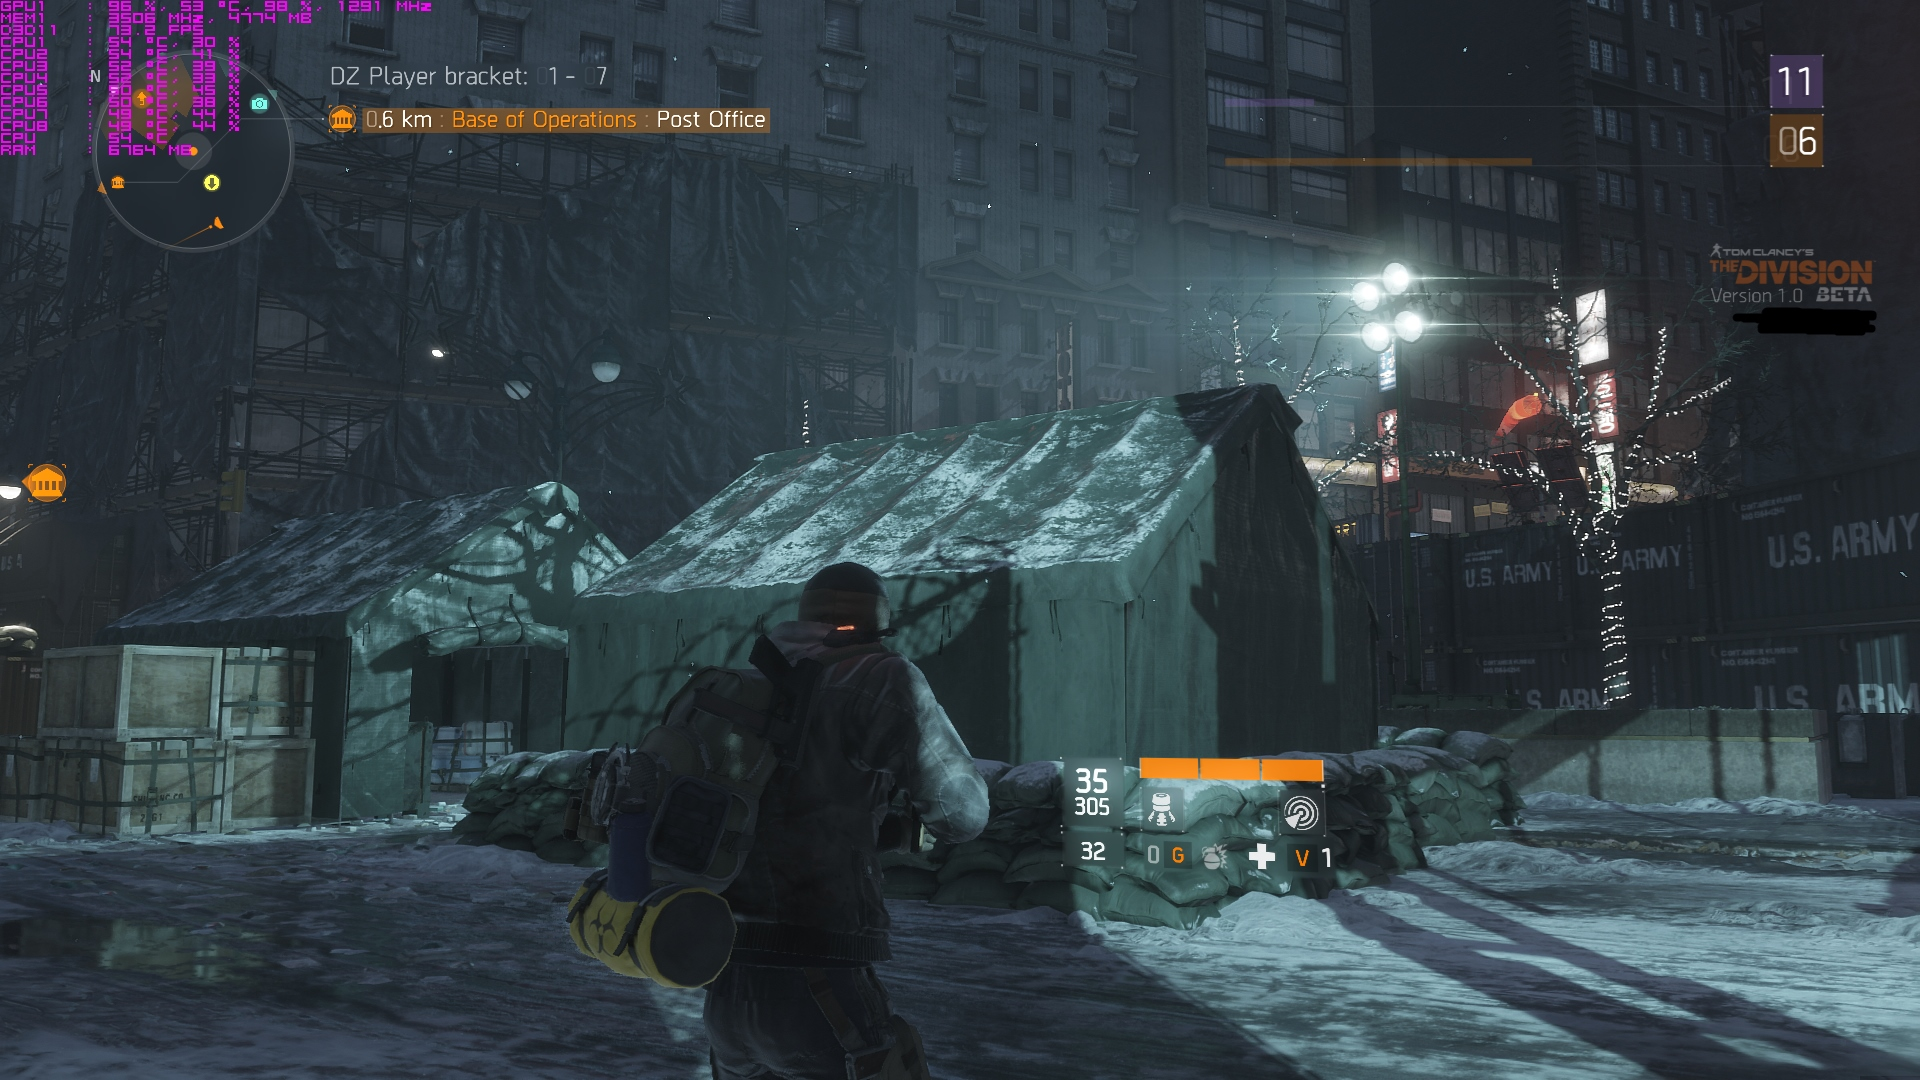 PC The Division screenshots, now with HBAO+ | Feed4gamers